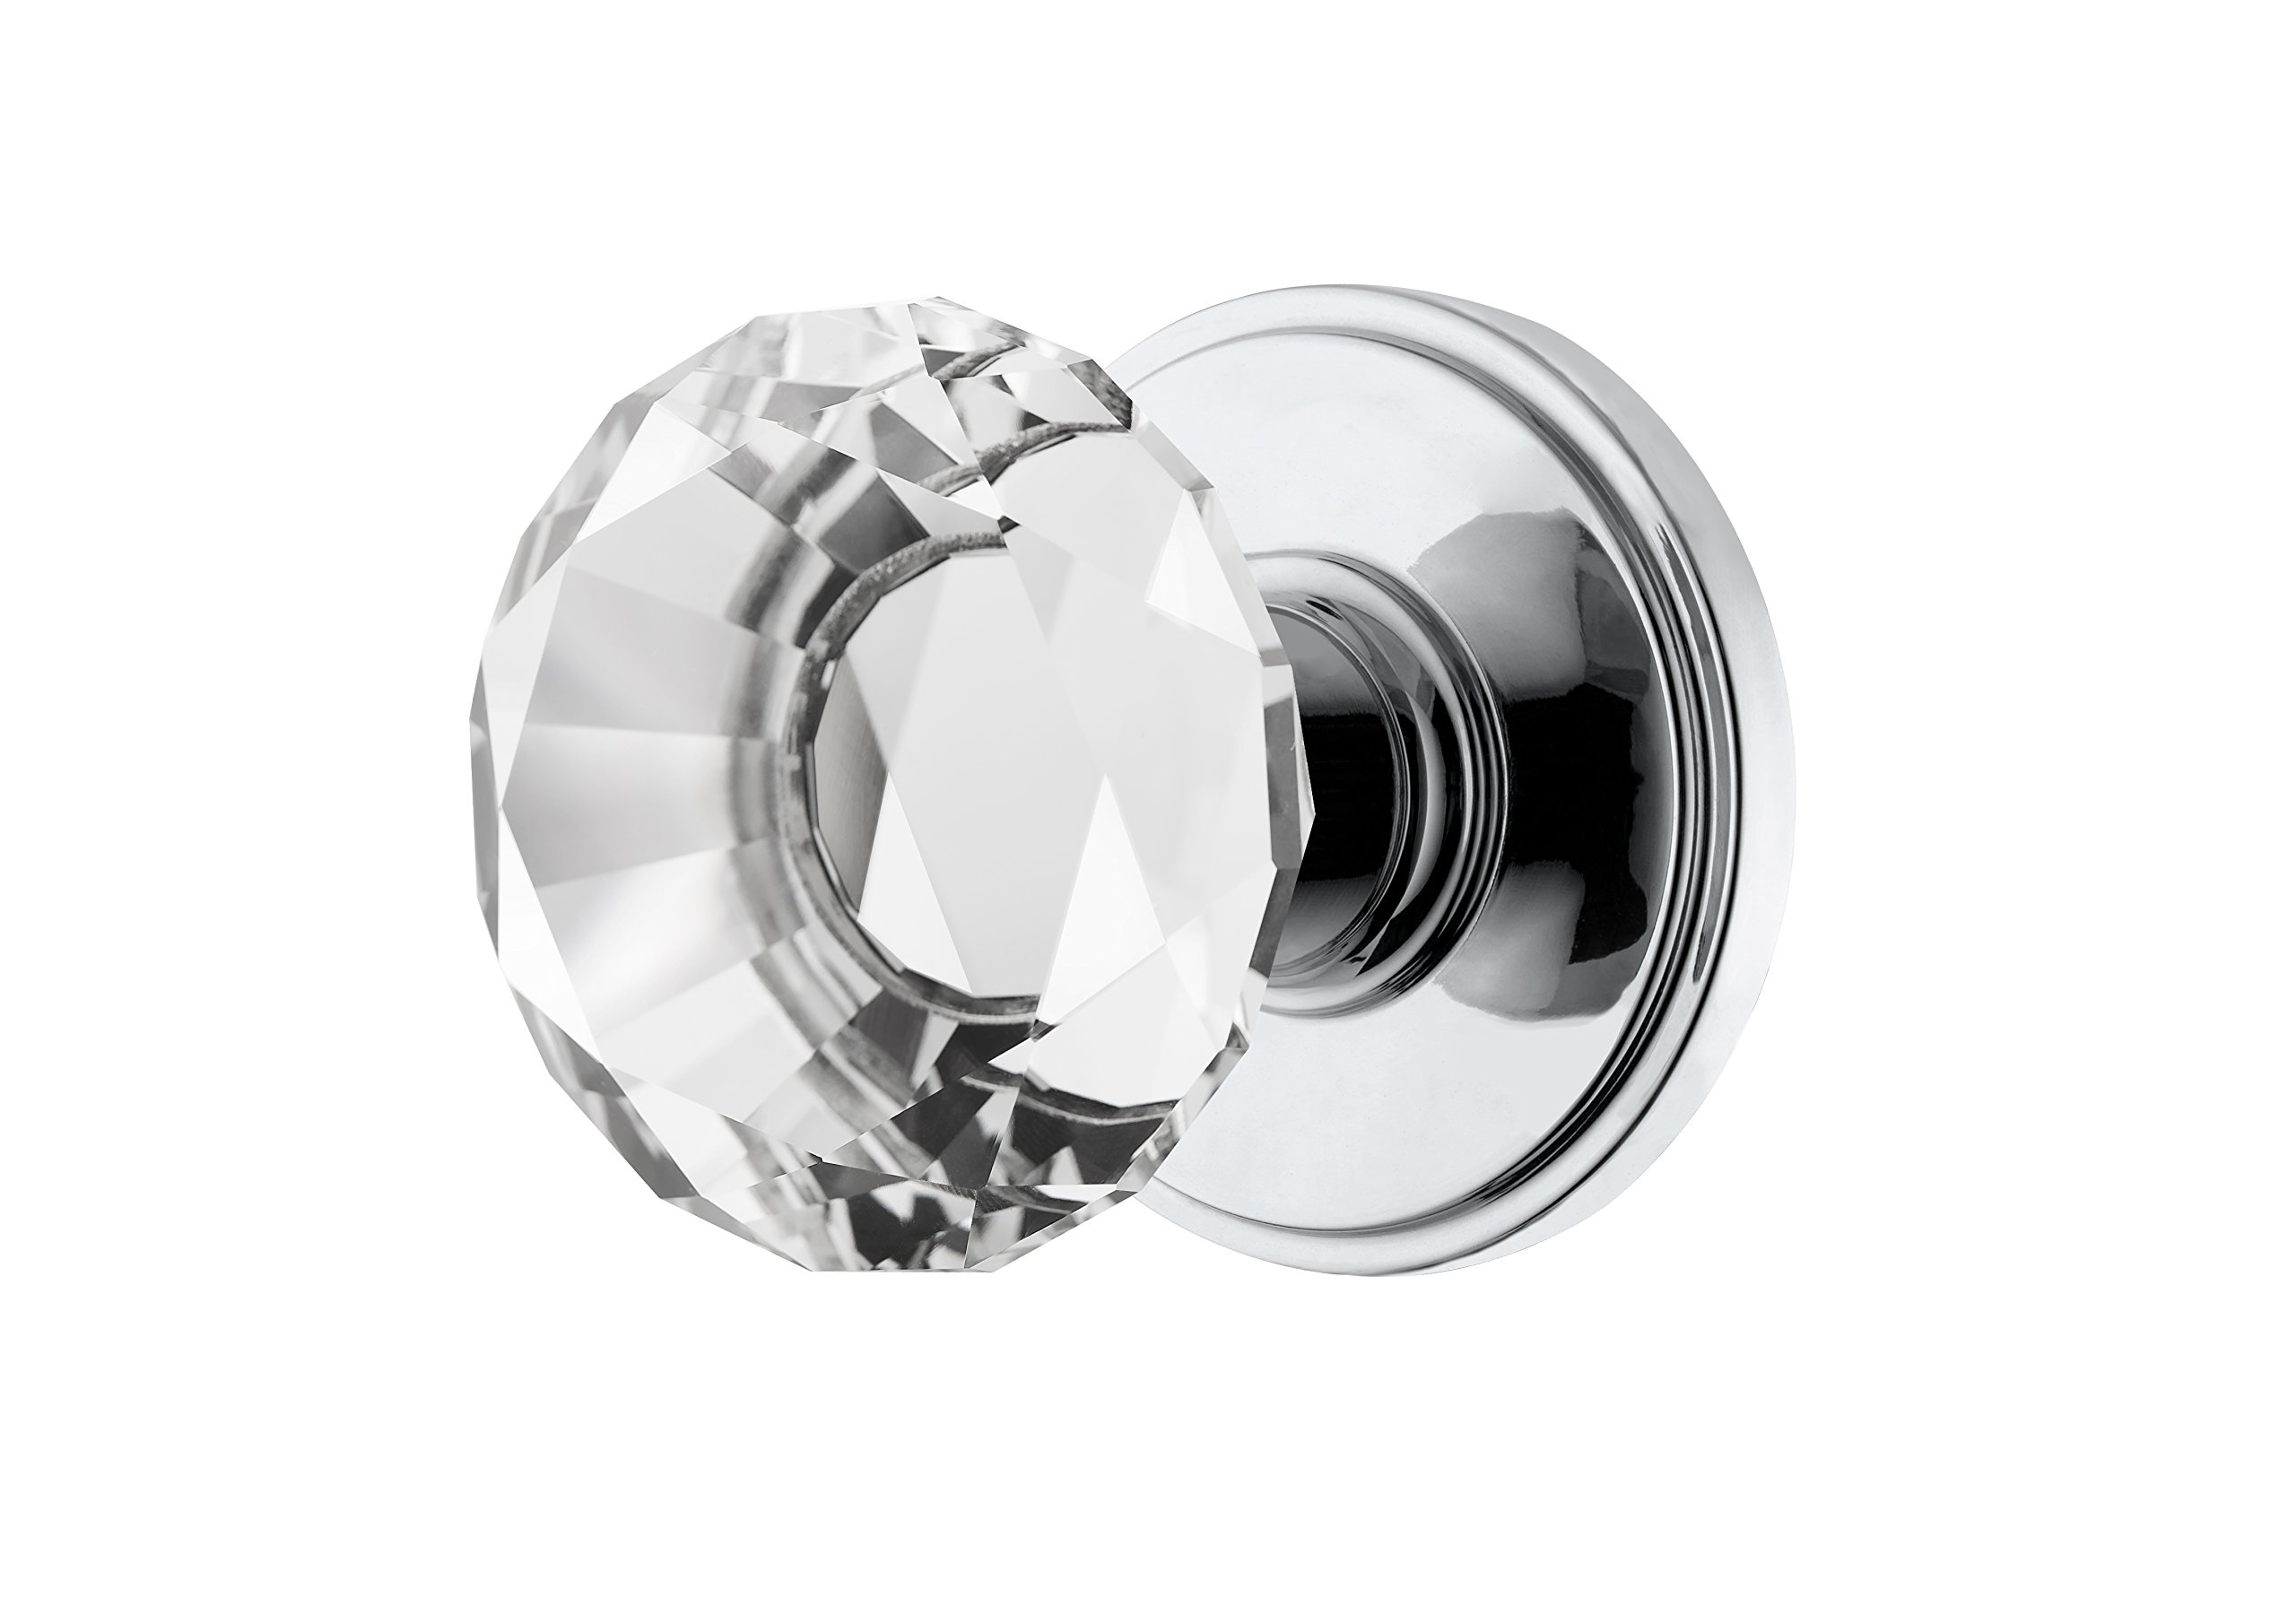 Decor Living, AMG and Enchante Accessories Diamond Crystal Door Knobs with Lock, Privacy Function for Bed and Bath, Venus Collection, DK06C-PR POC, Polished Chrome